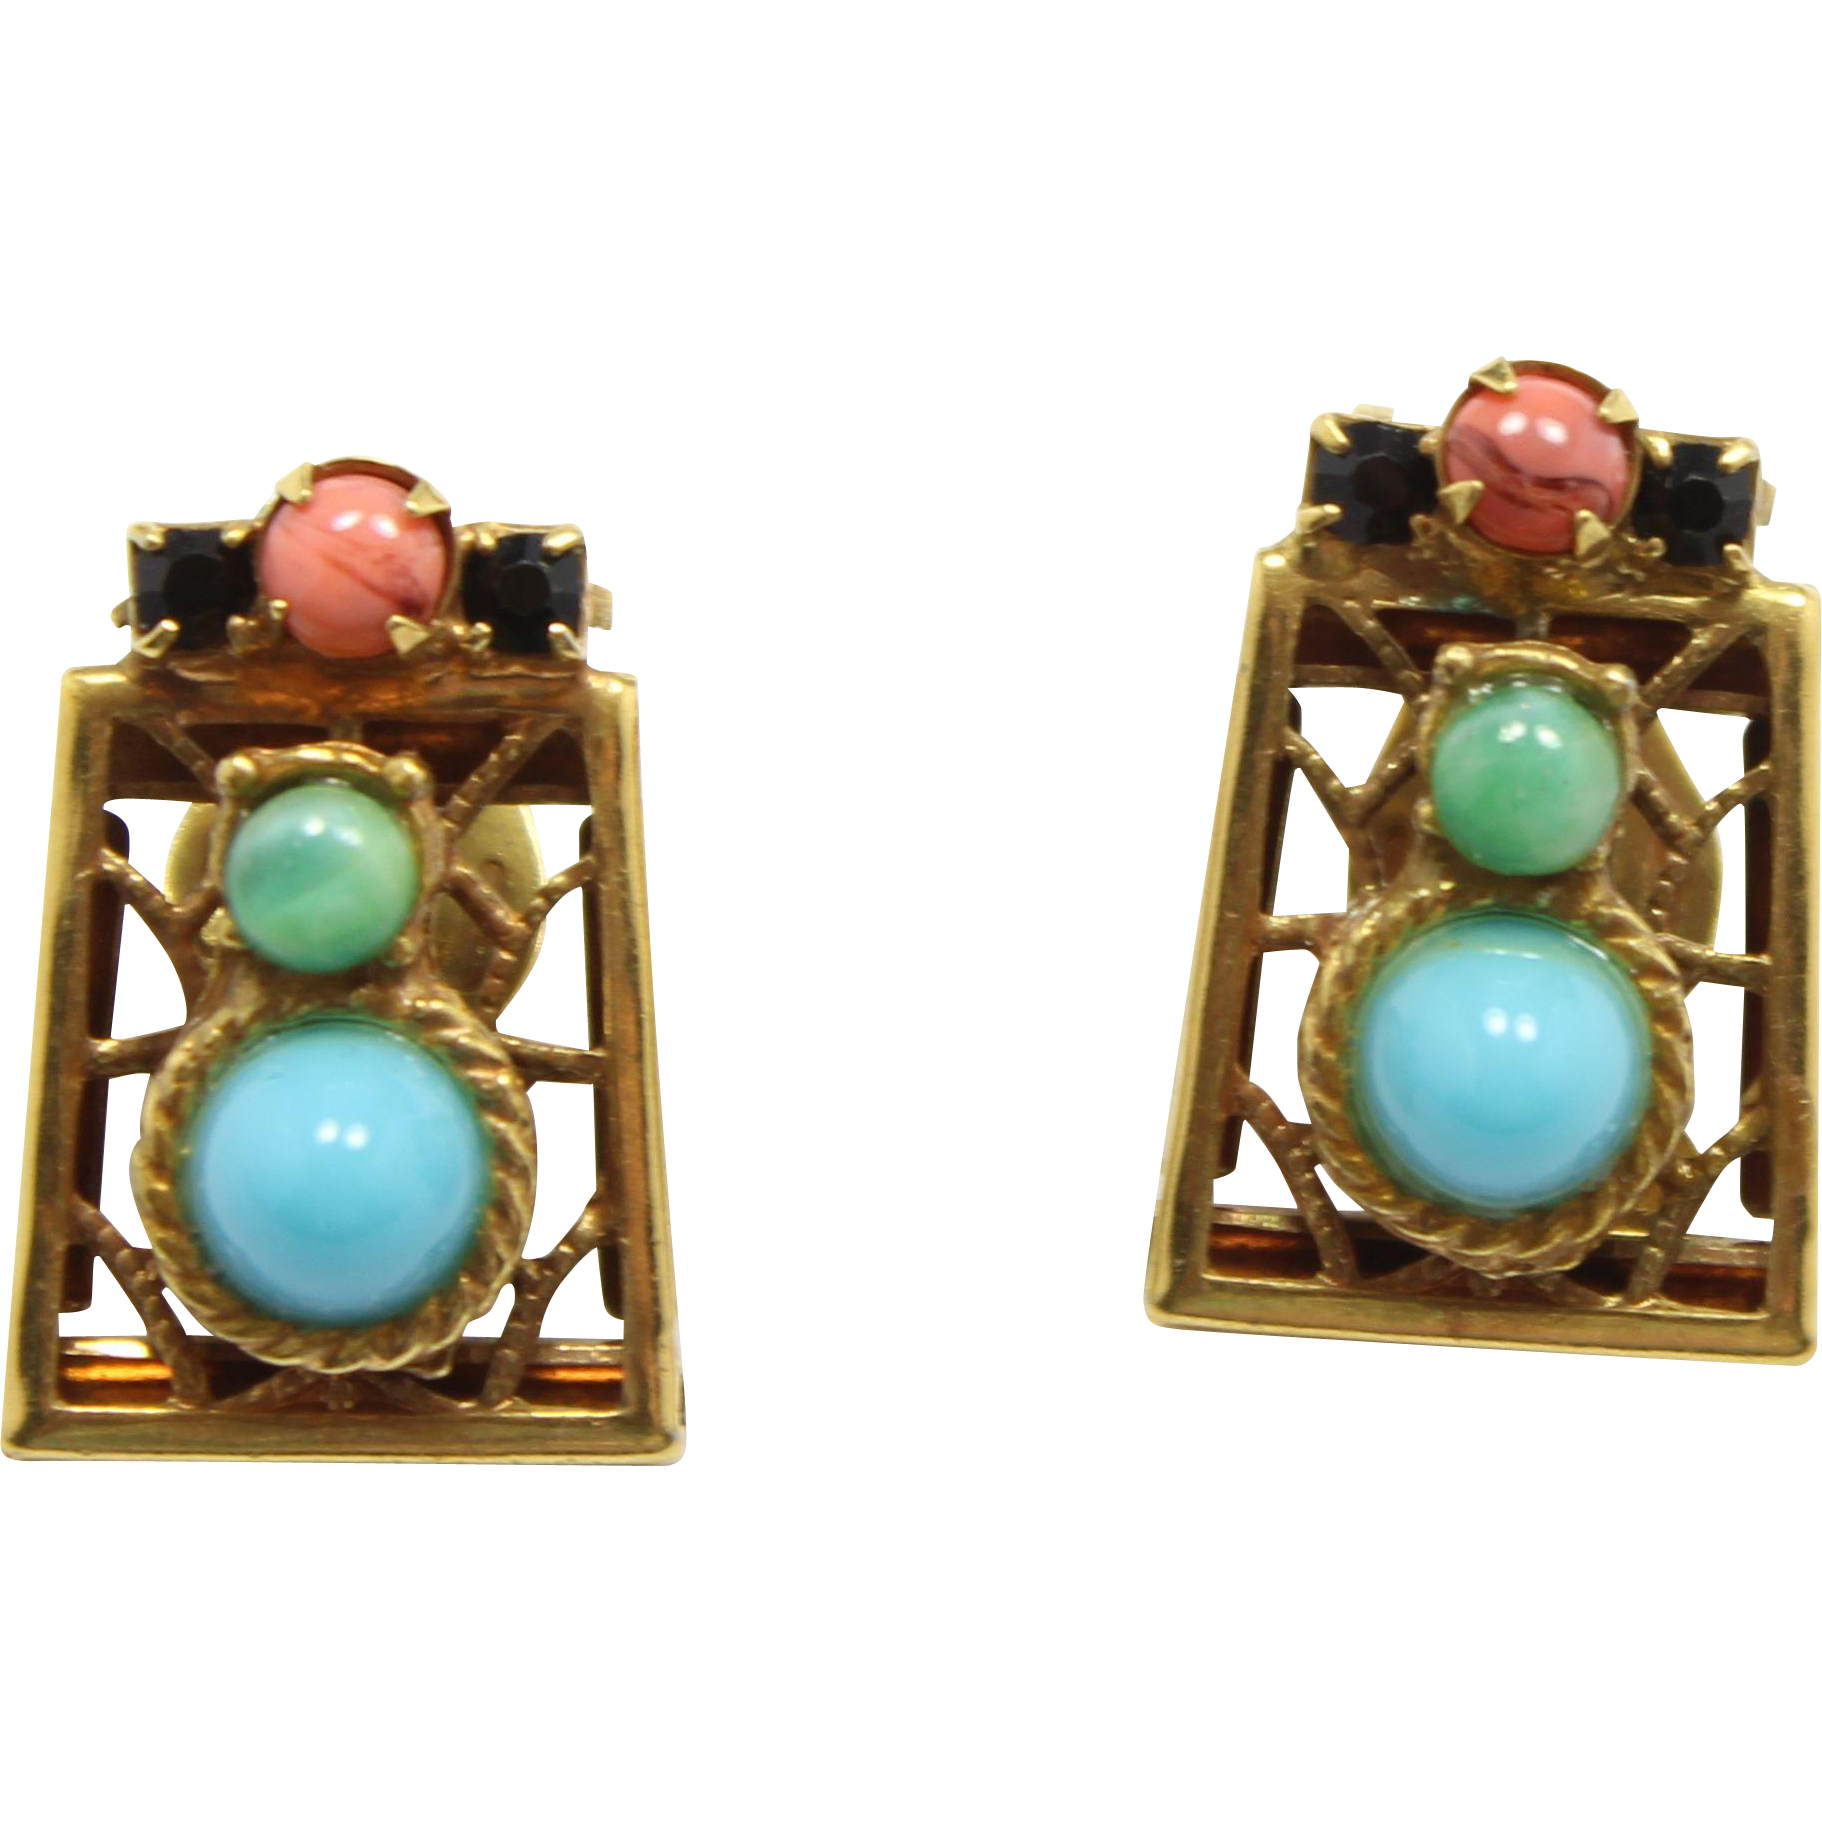 Vintage Juliana (D&E) Book Piece Moroccan Matrix, Faux Turquoise, Jade & Coral Cabochon Earrings